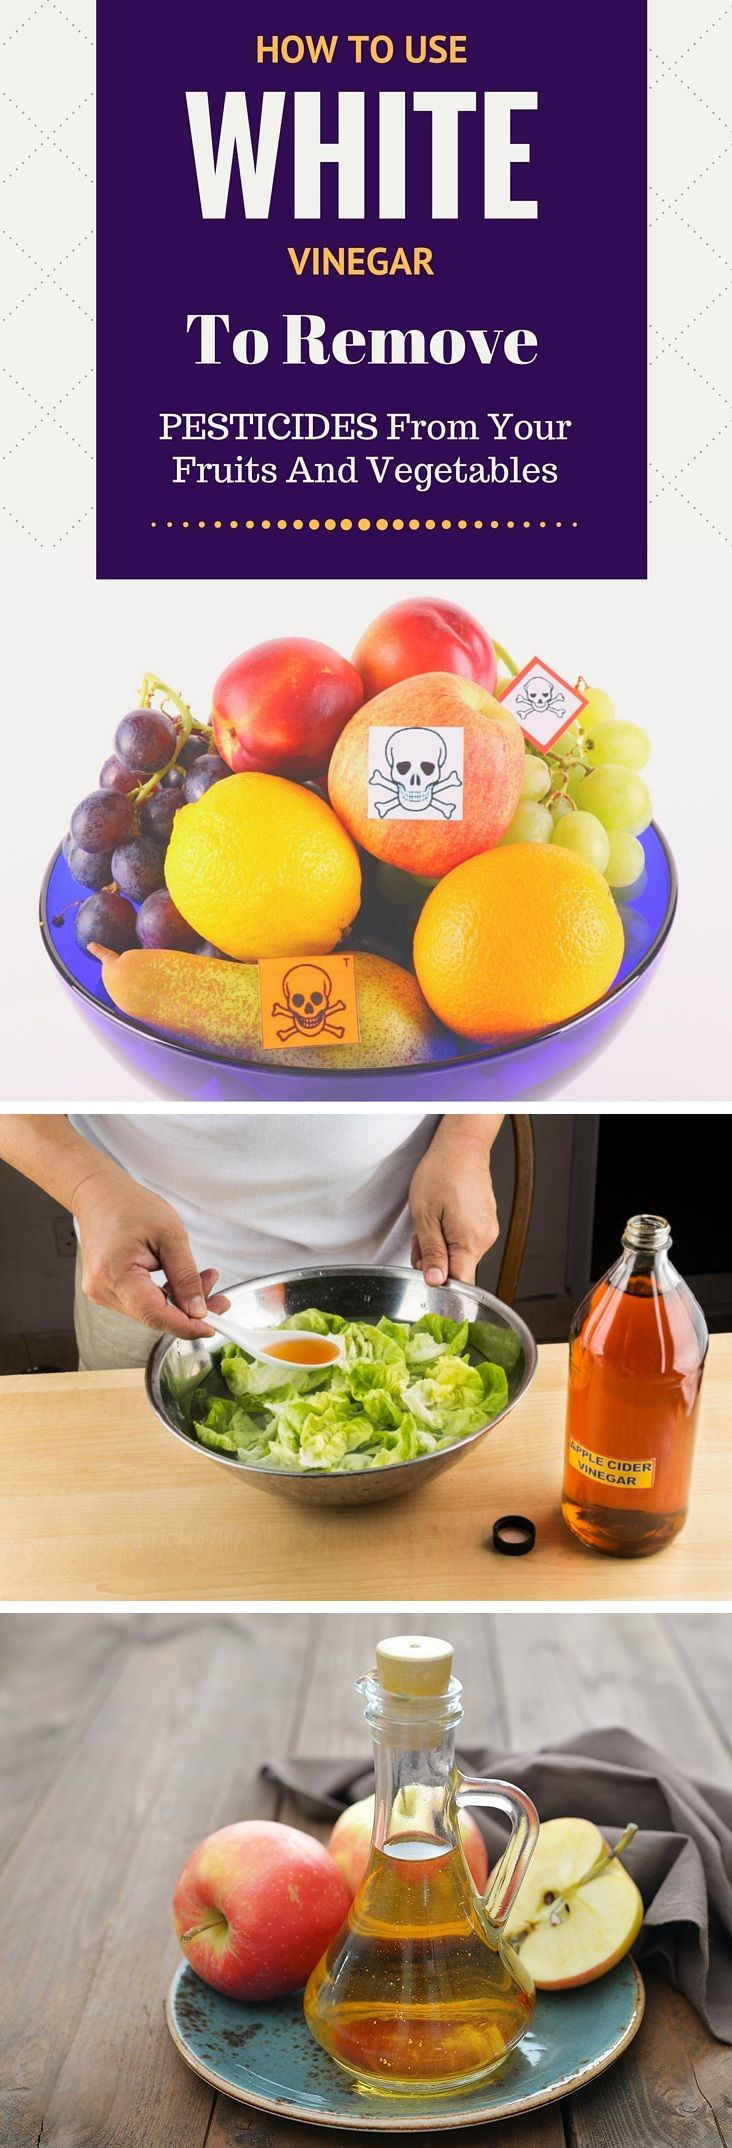 How To Use White Vinegar To Remove Pesticides From Your Fruits And Vegetables - Home Remedies-Almost 65% of produce samples analyzed by the U.S Department of Agriculture have been shown to be positive for pesticides. Nobody likes to have pesticide in thei